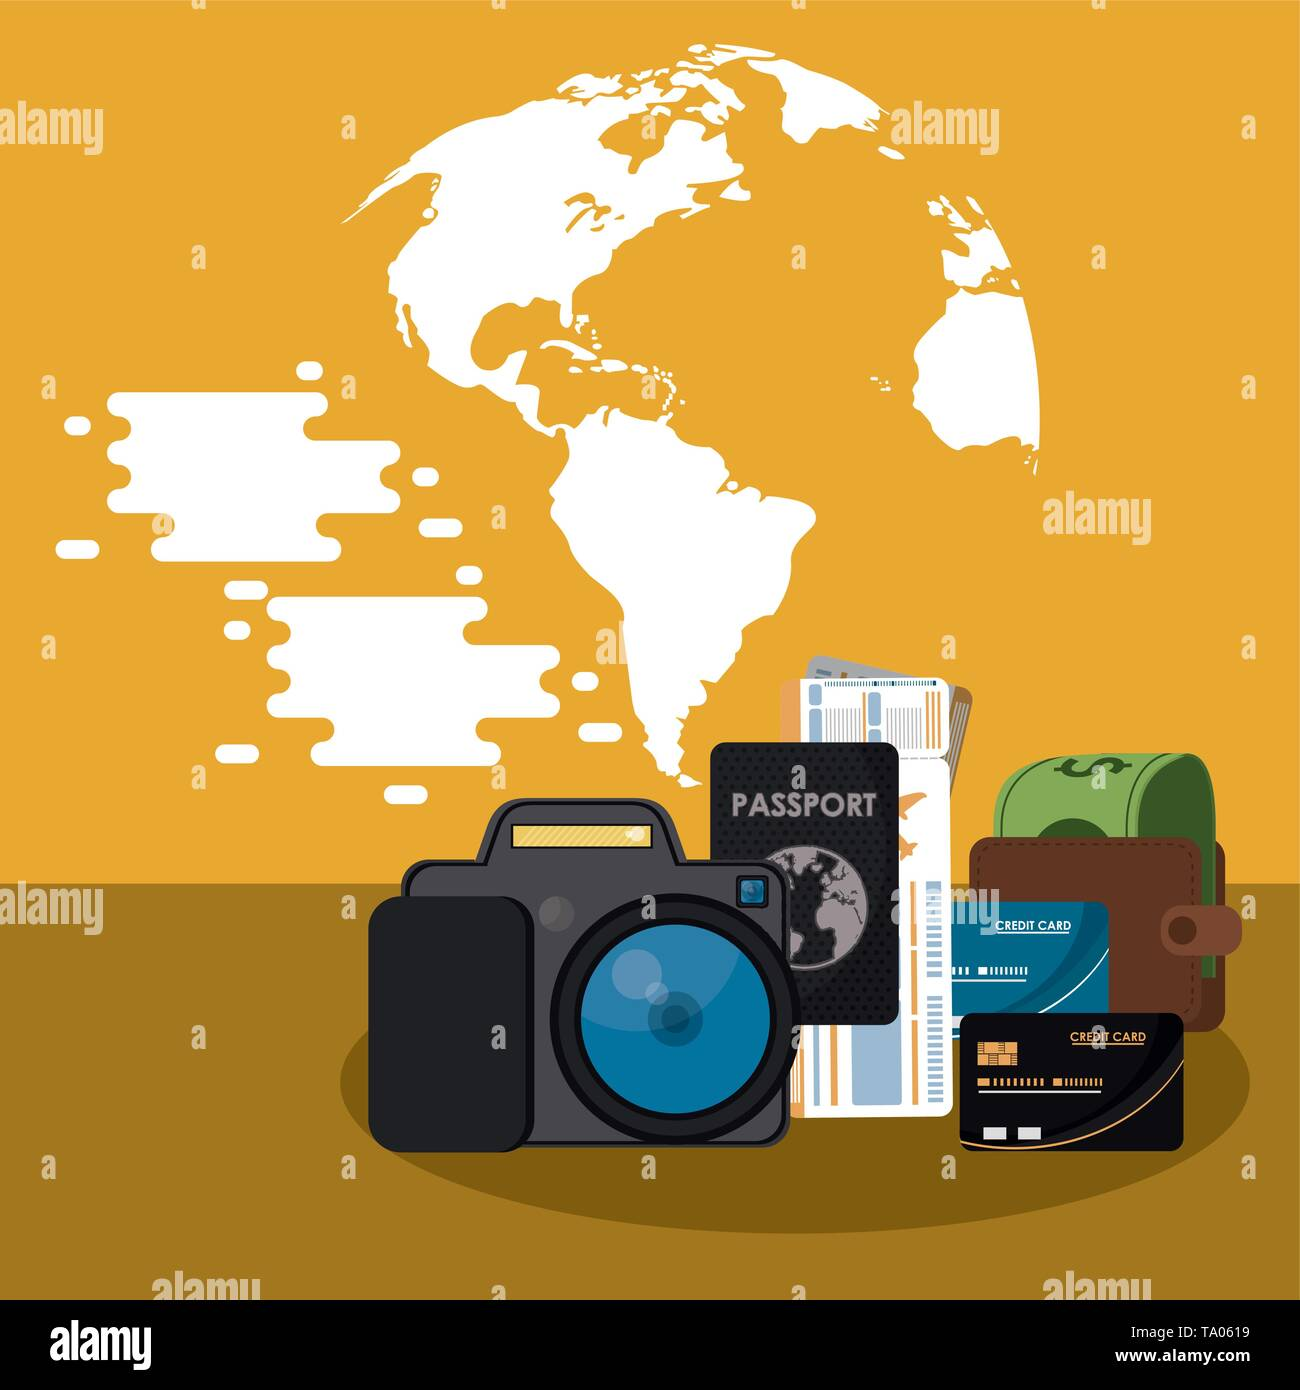 Travel and vacations elements - Stock Image